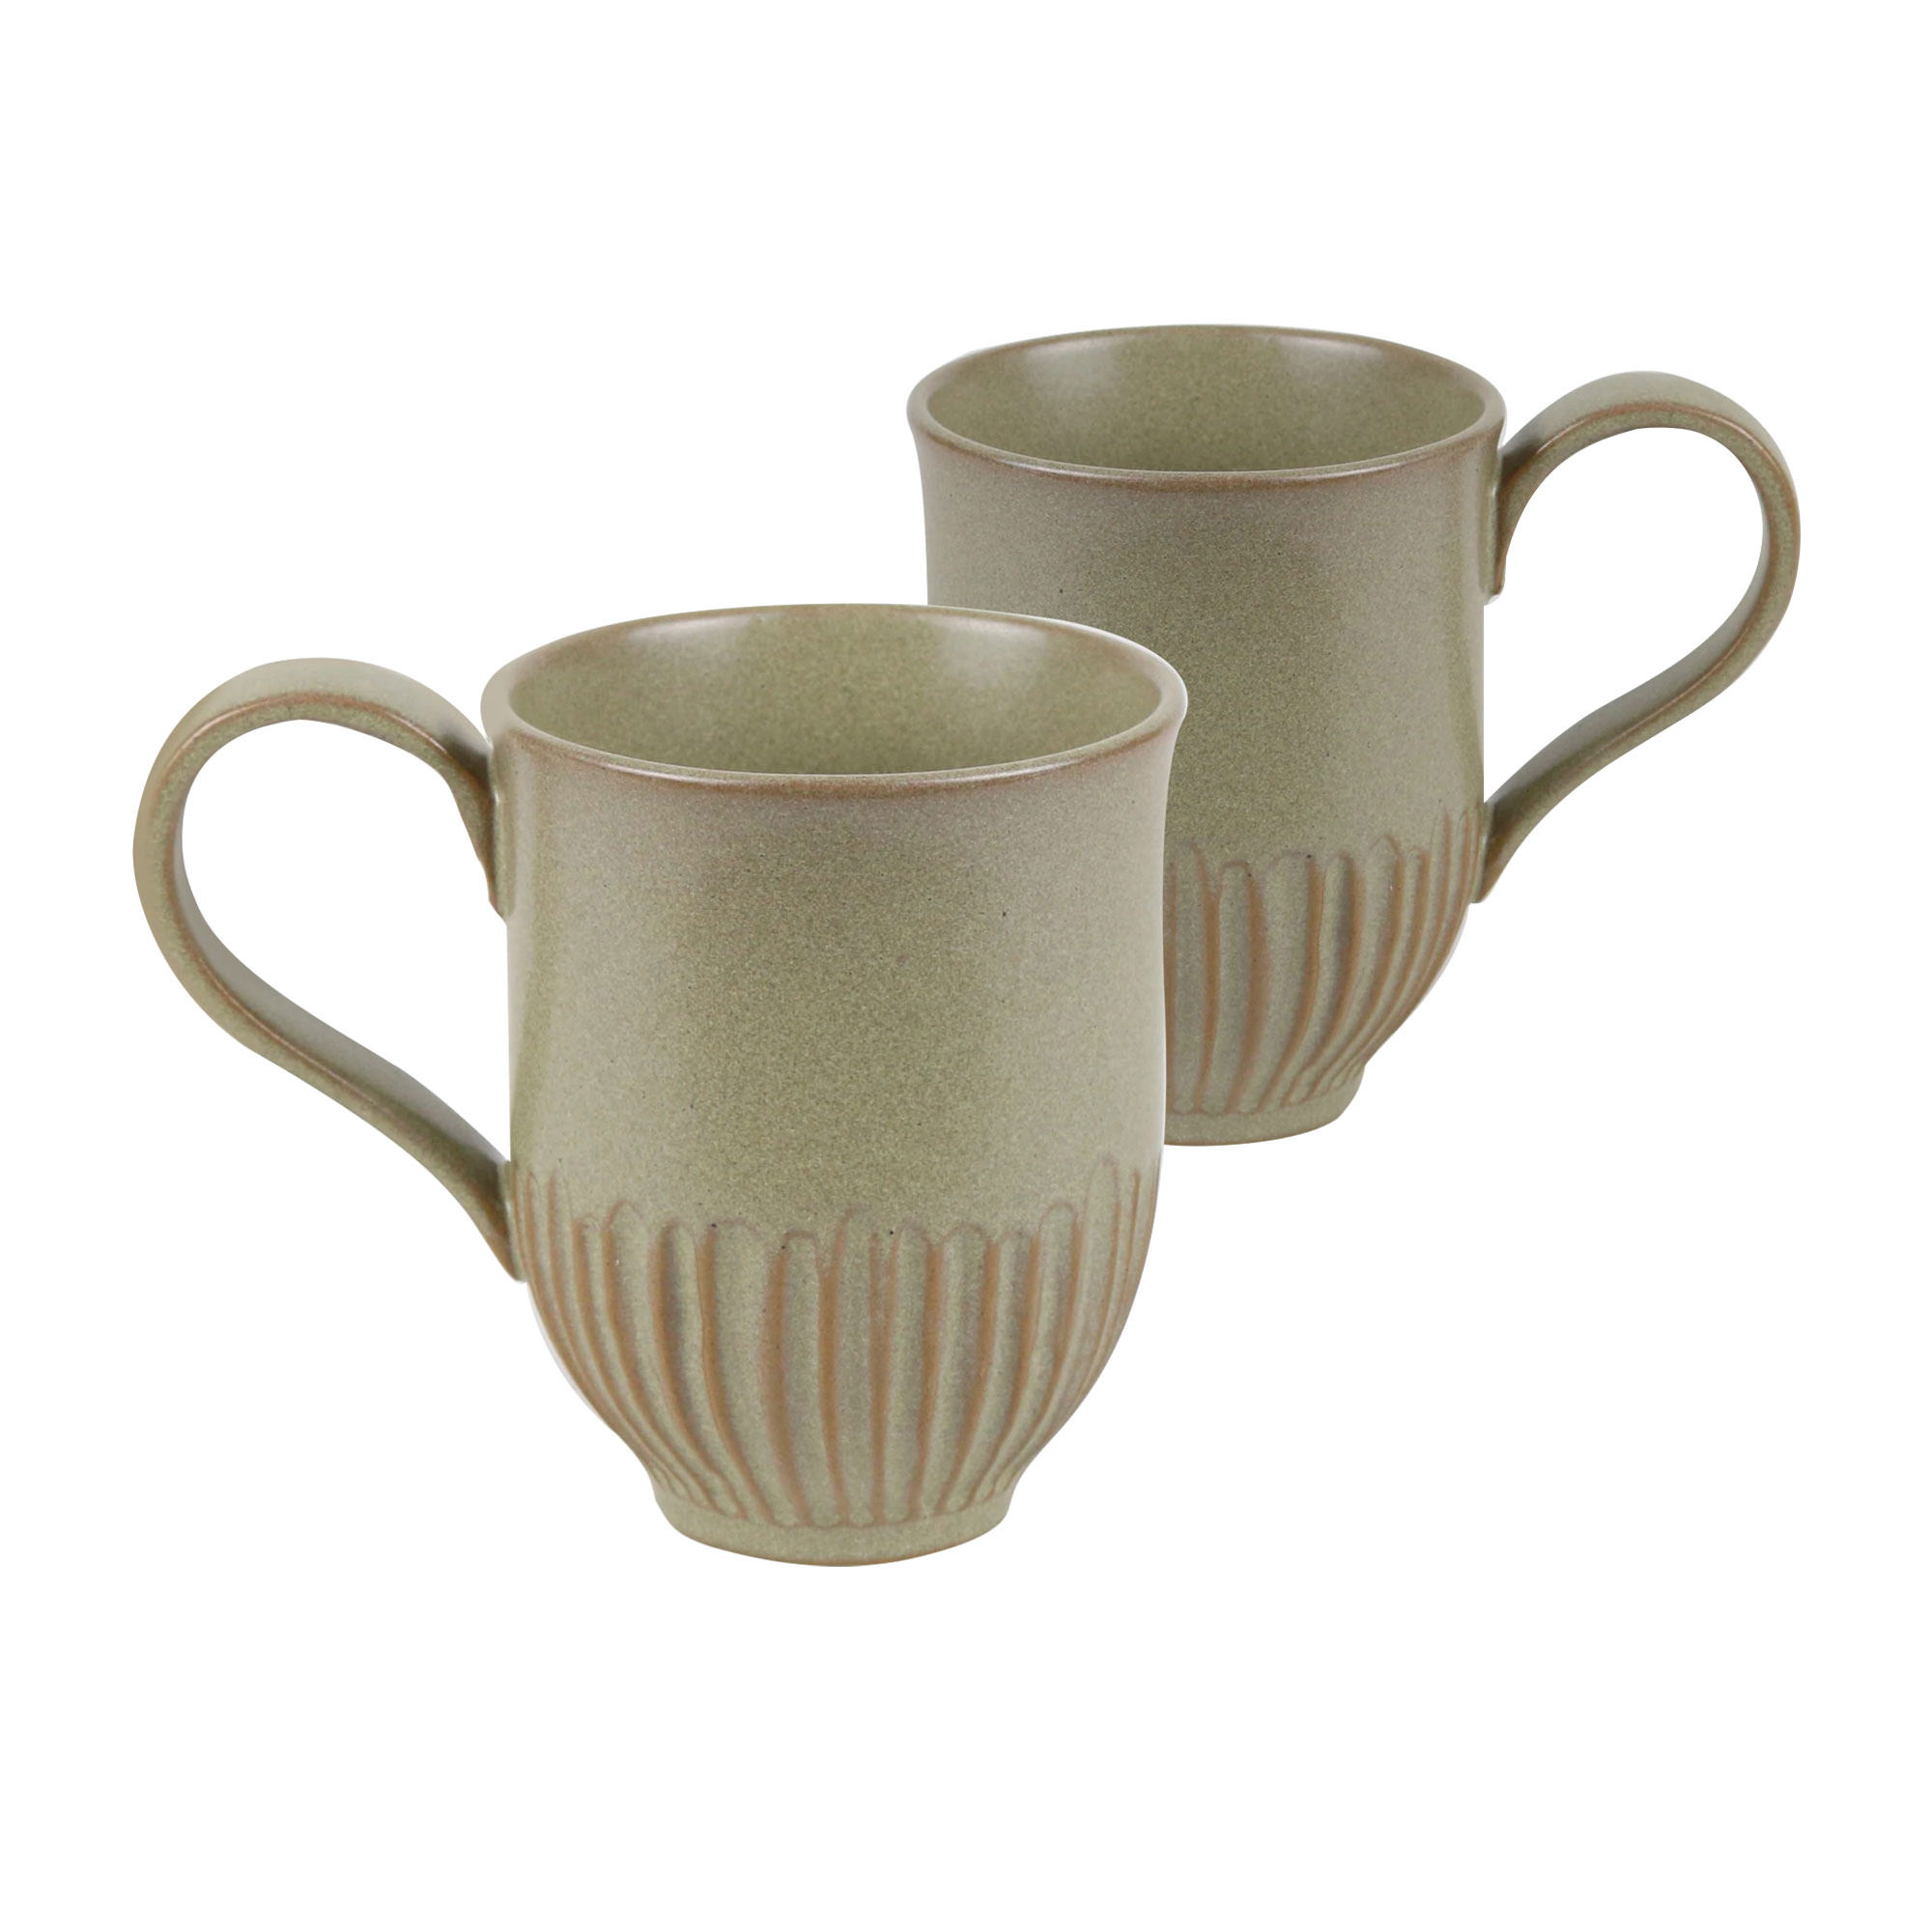 Robert Gordon Crafted 2pc Mug Set 400ml Olive